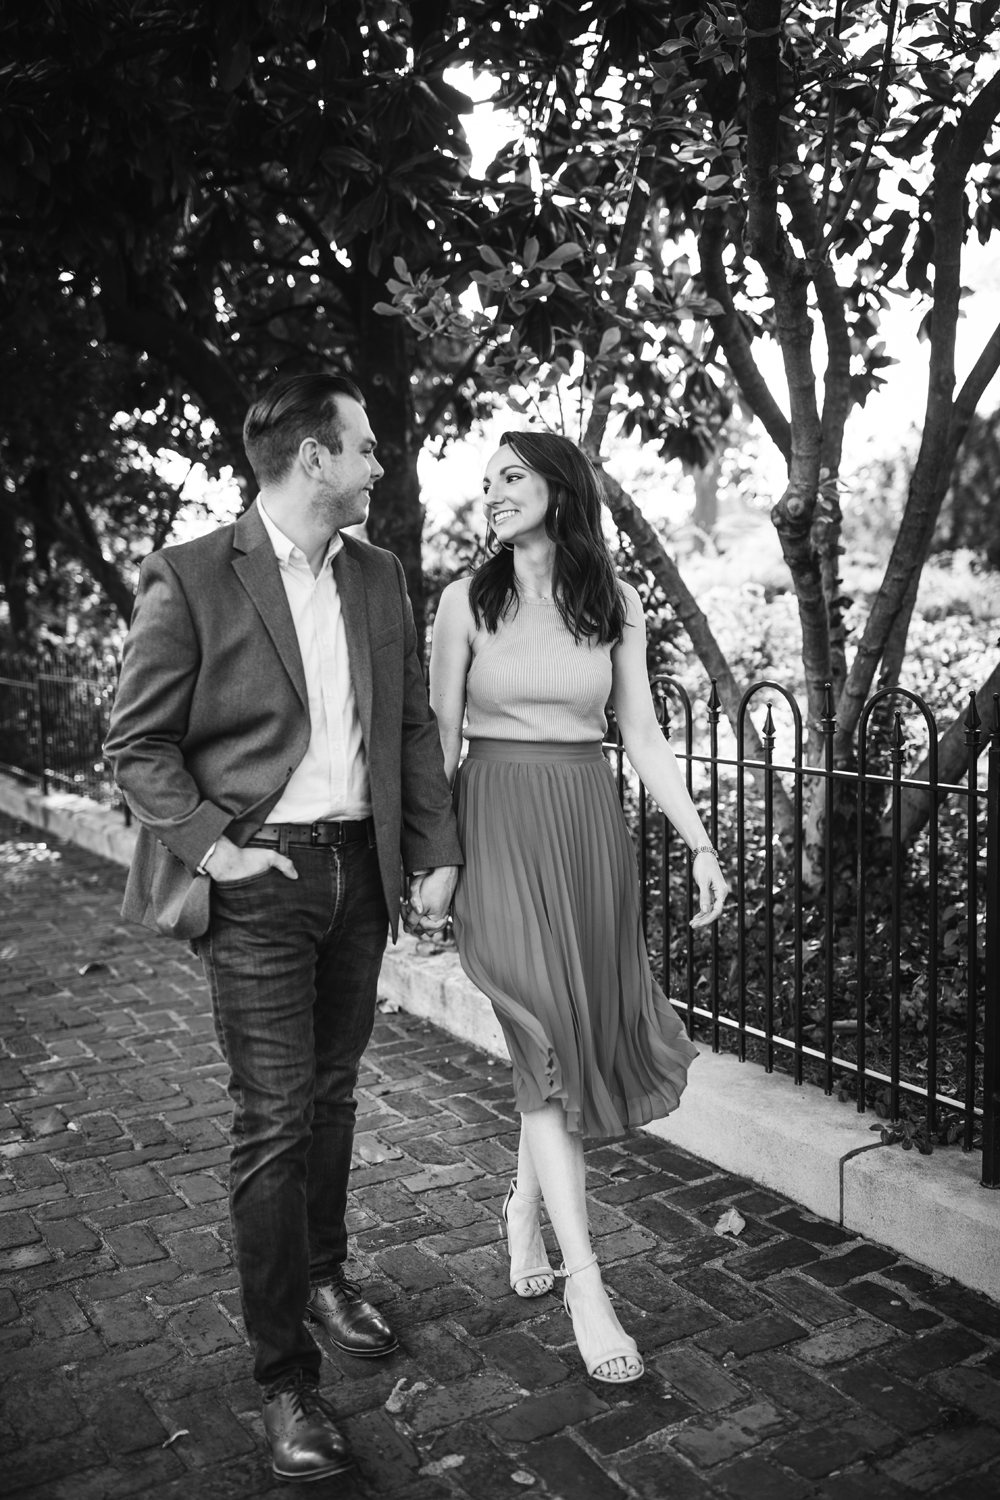 05-ck-photo-nashville-wedding-photographer-couples-2018.jpg